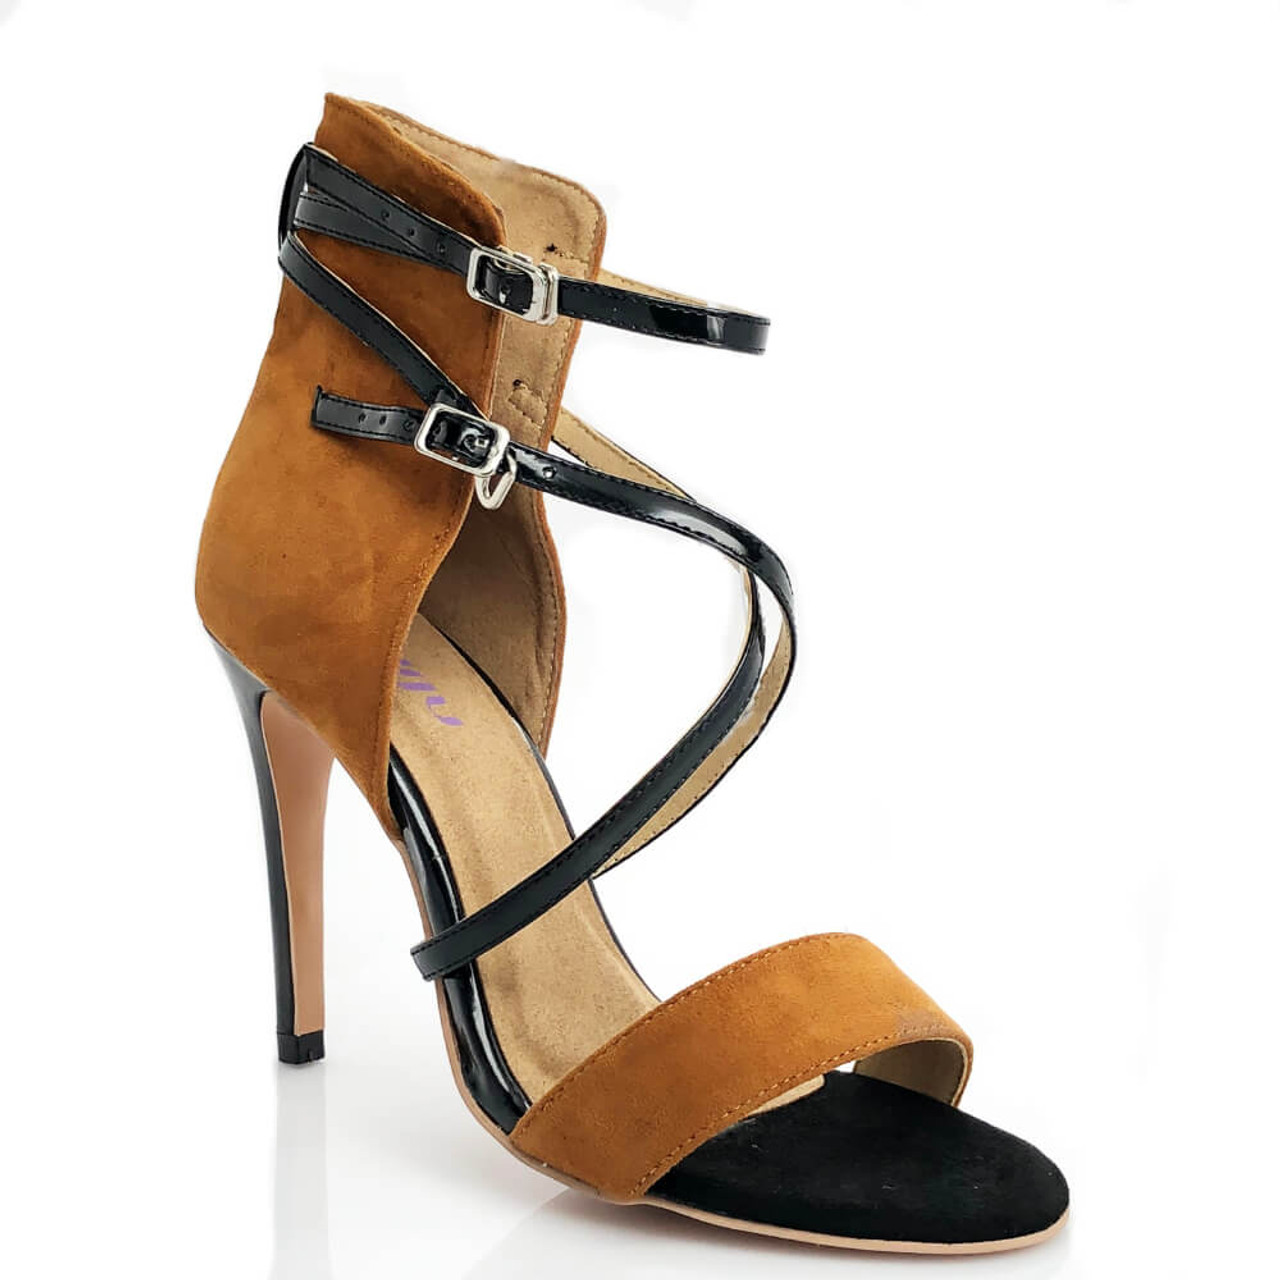 57dba792fb7 Desnudate - Open Toe High Back Heel Sandal - Custom Made To Order - CB1898